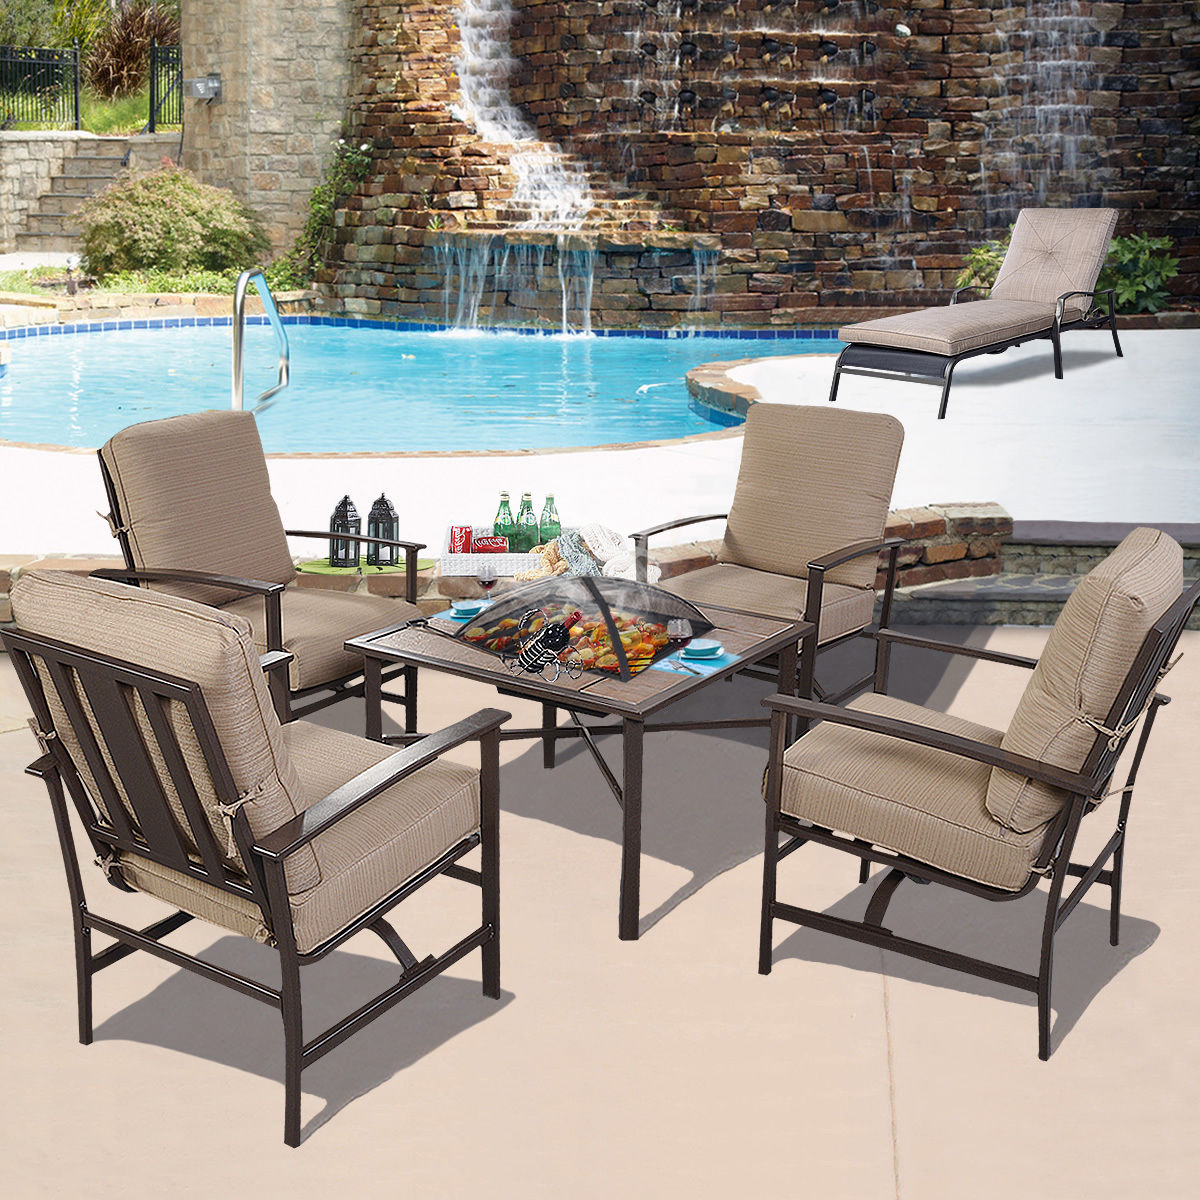 Garden Furniture Steel 5 pcs patio steel chair/bbq stove cushioned set - outdoor